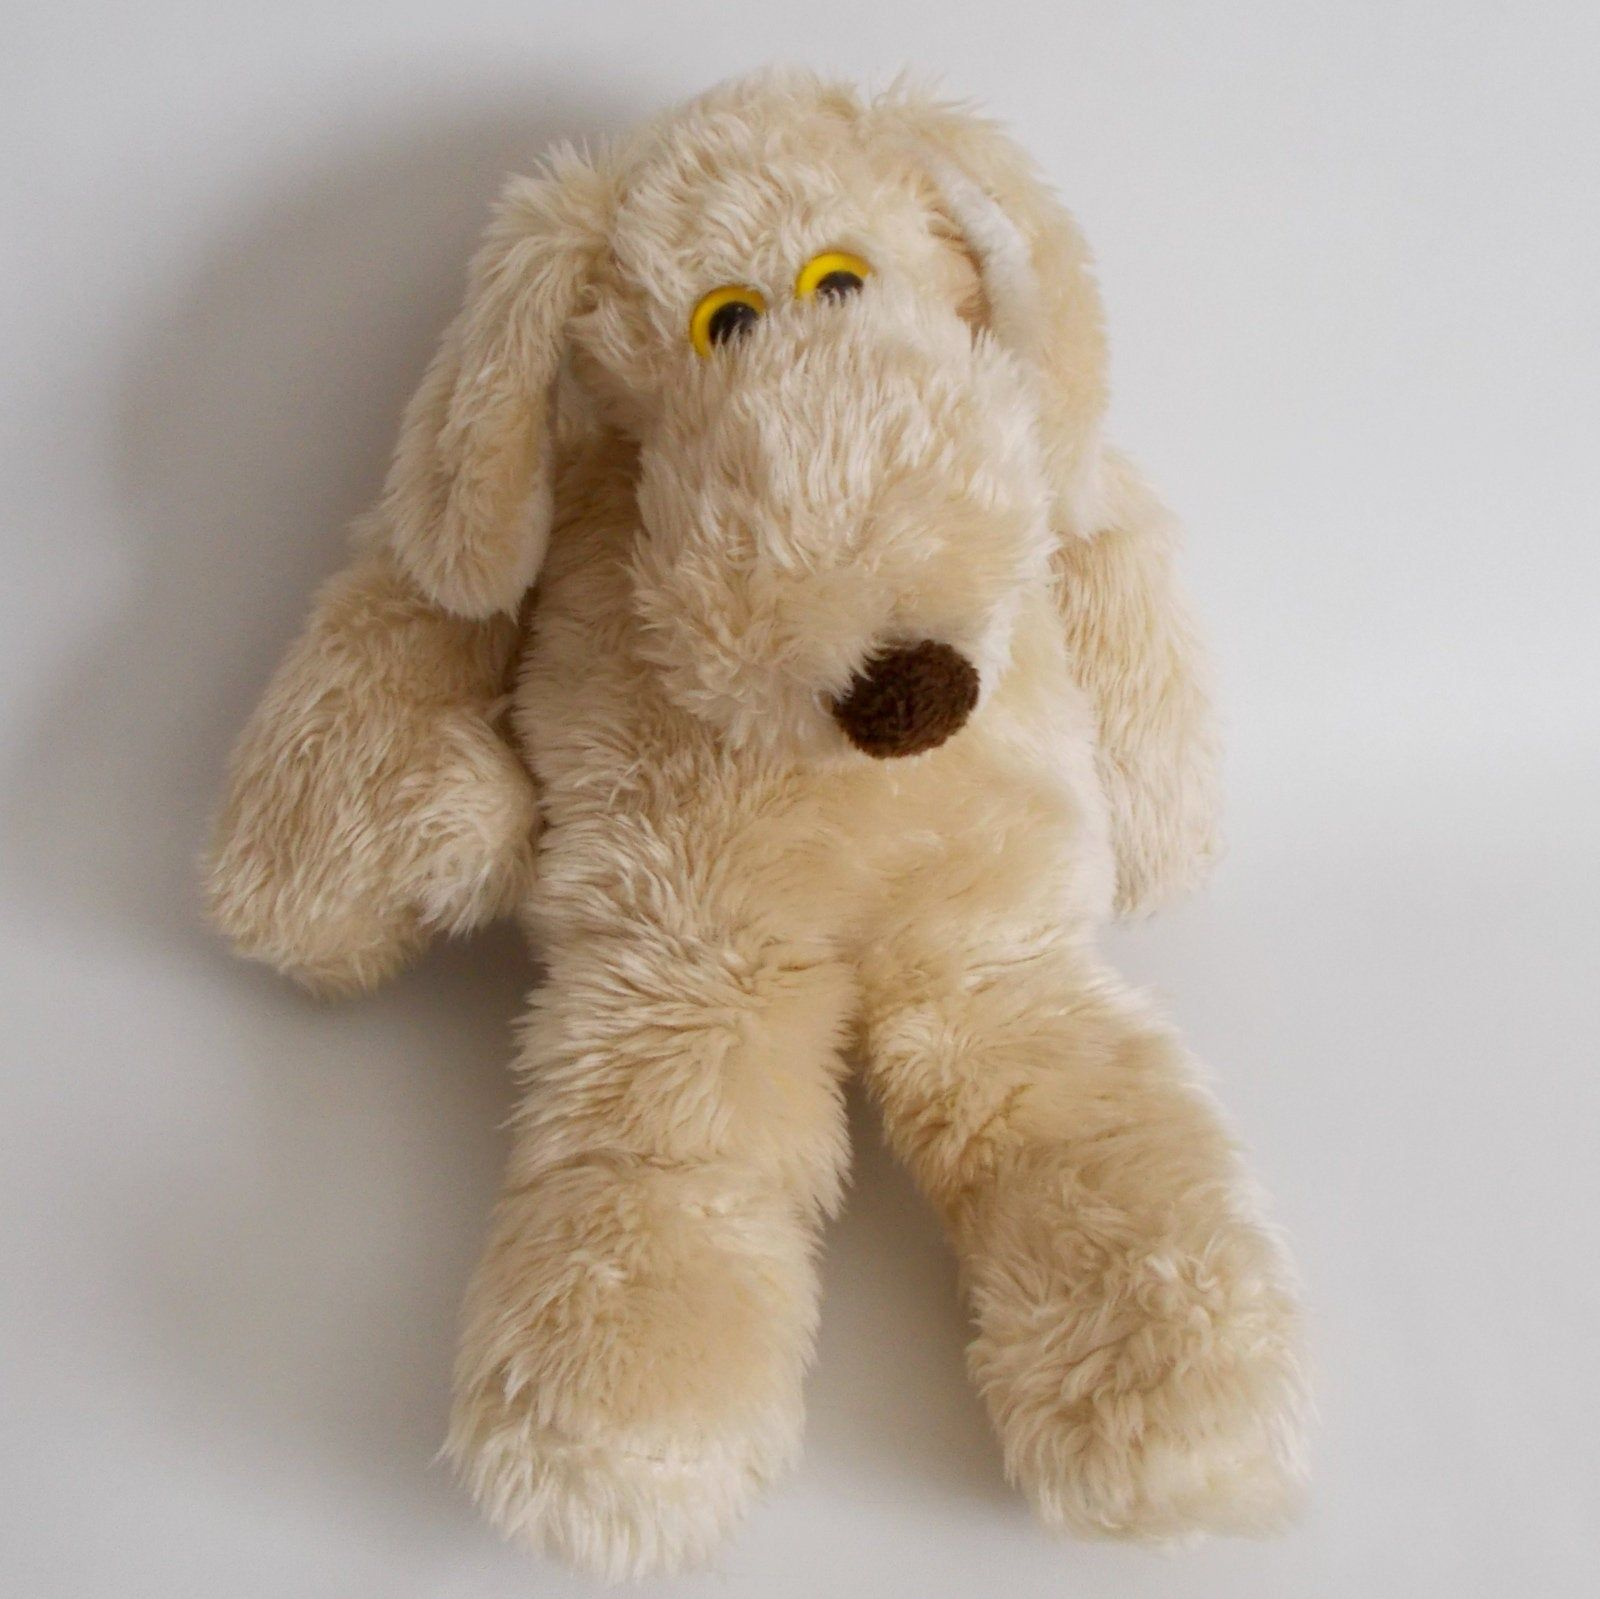 Jumbo Pokemon Plush, Le Mutt Dog Plush Francesca Hoerlein 17 Francesca And In 2020 Mutt Dog Animals Mutt